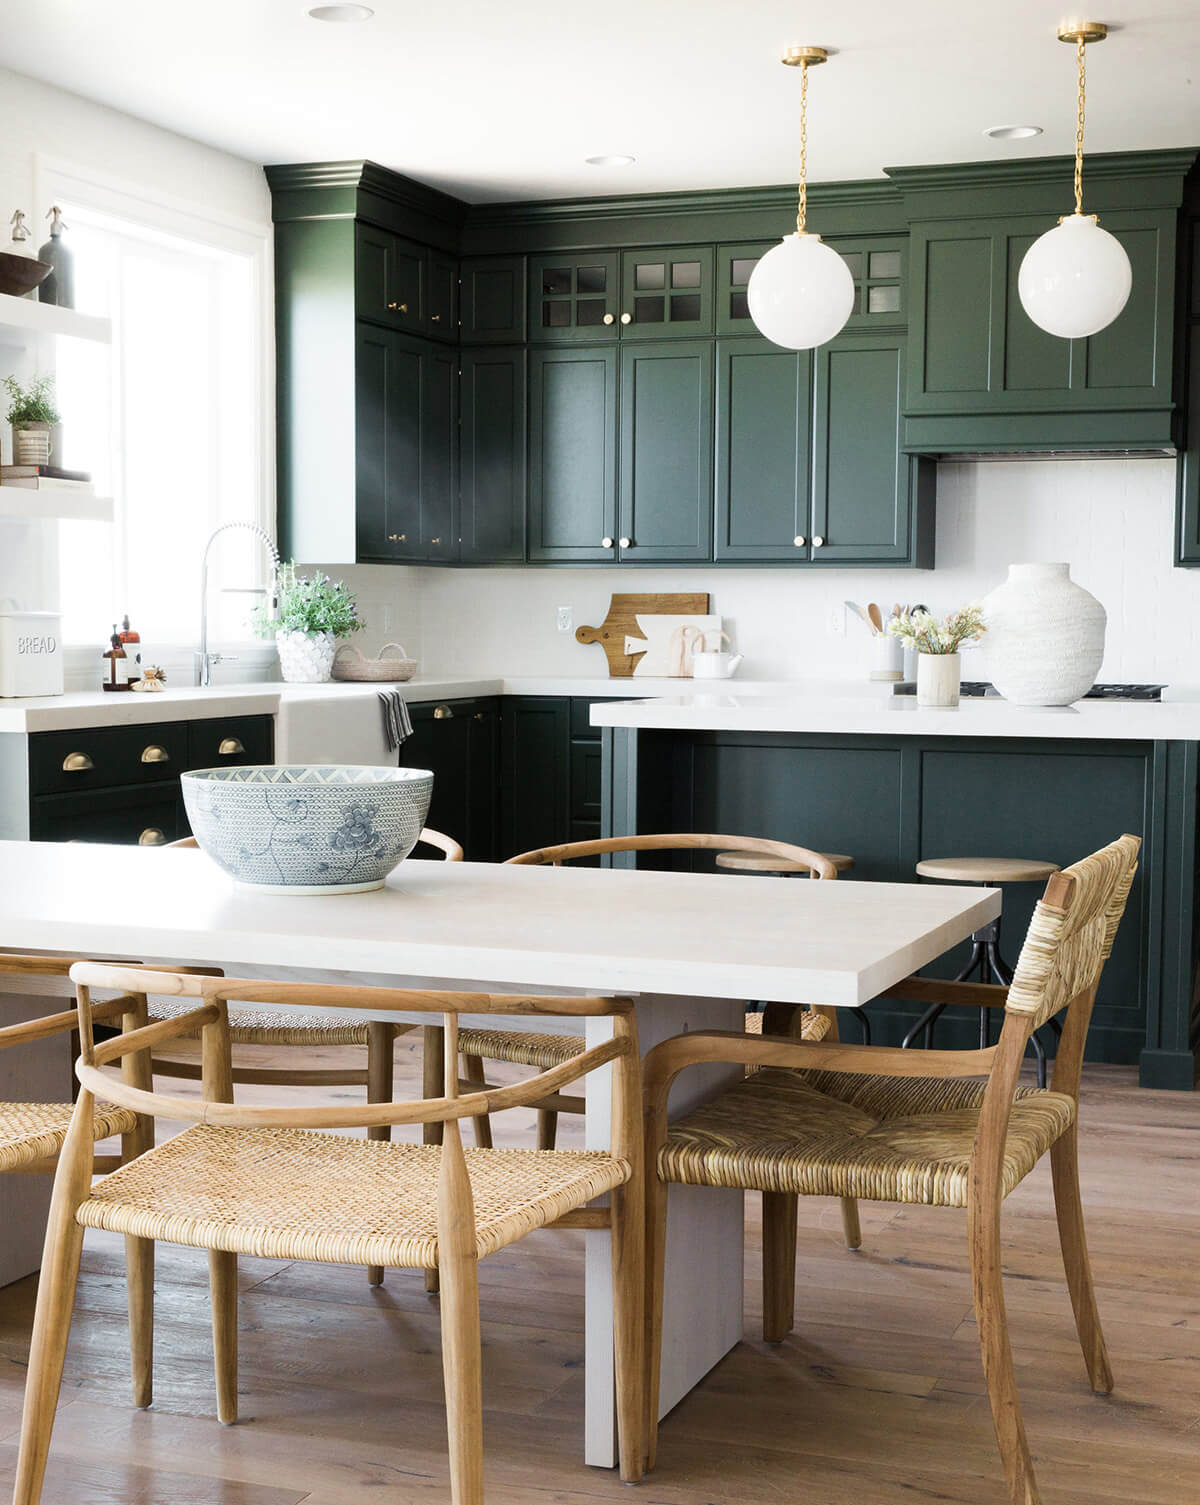 Evoke Life with Green Cabinetry